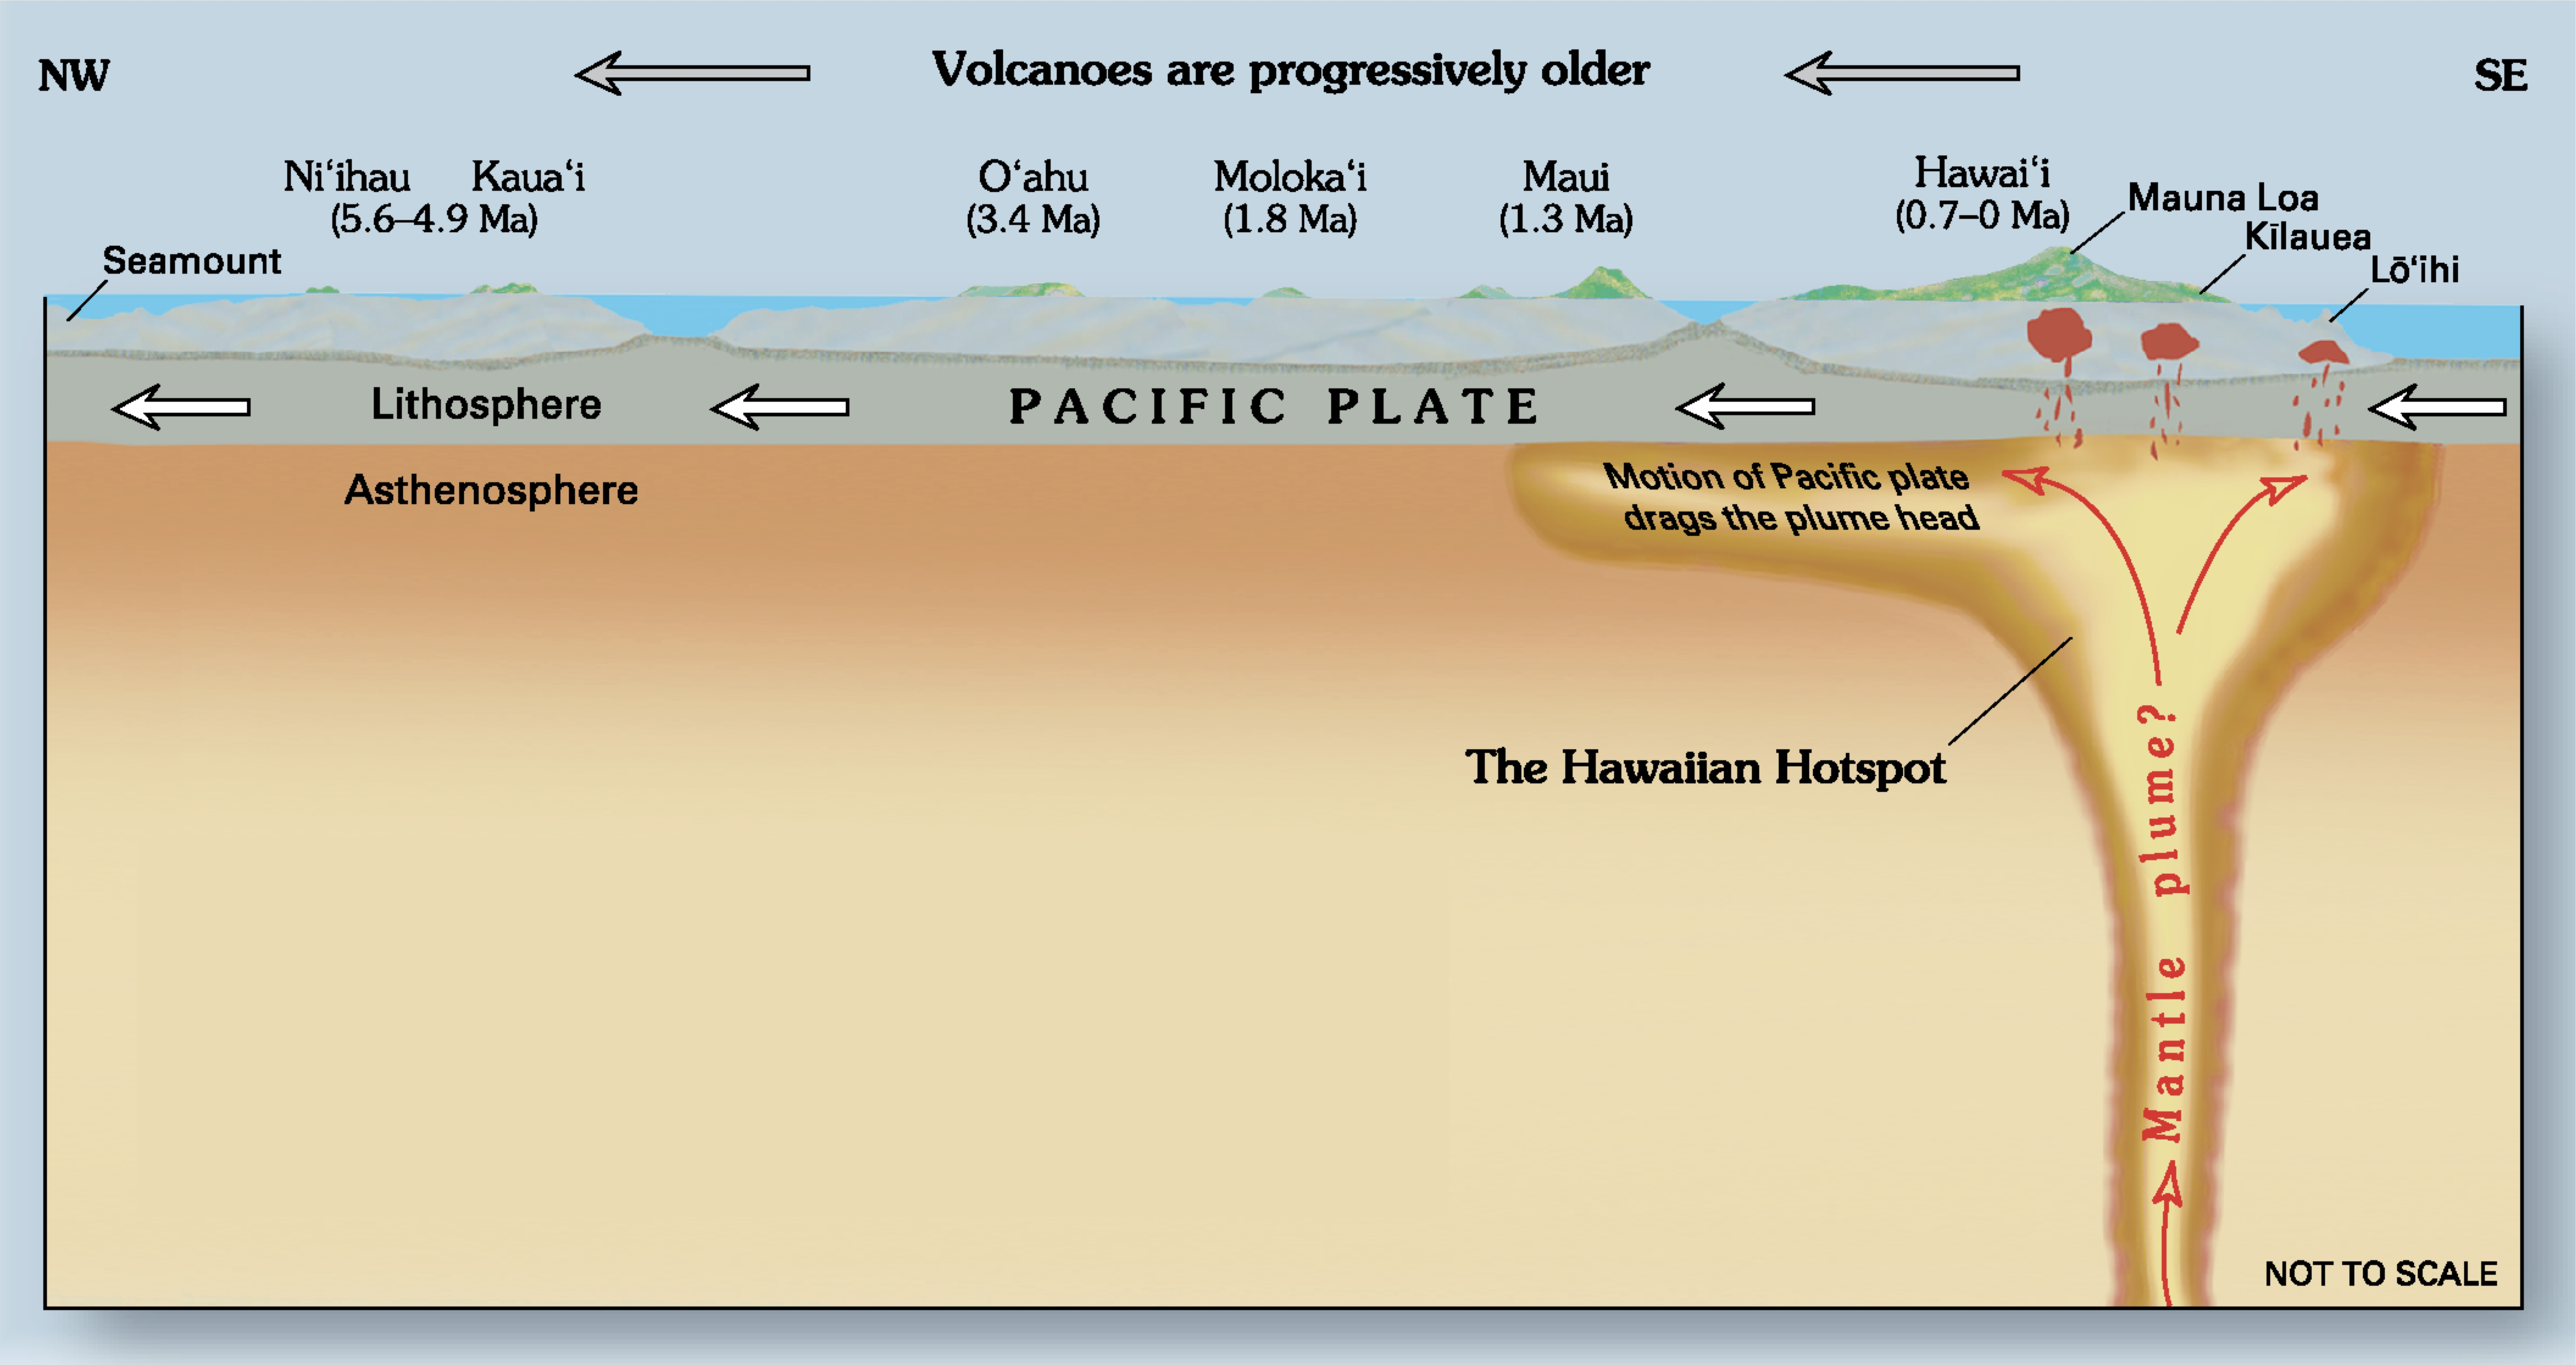 If Island Chains Like Hawai I Were Formed By The Continuous Movement Of A Plate Over A Magma